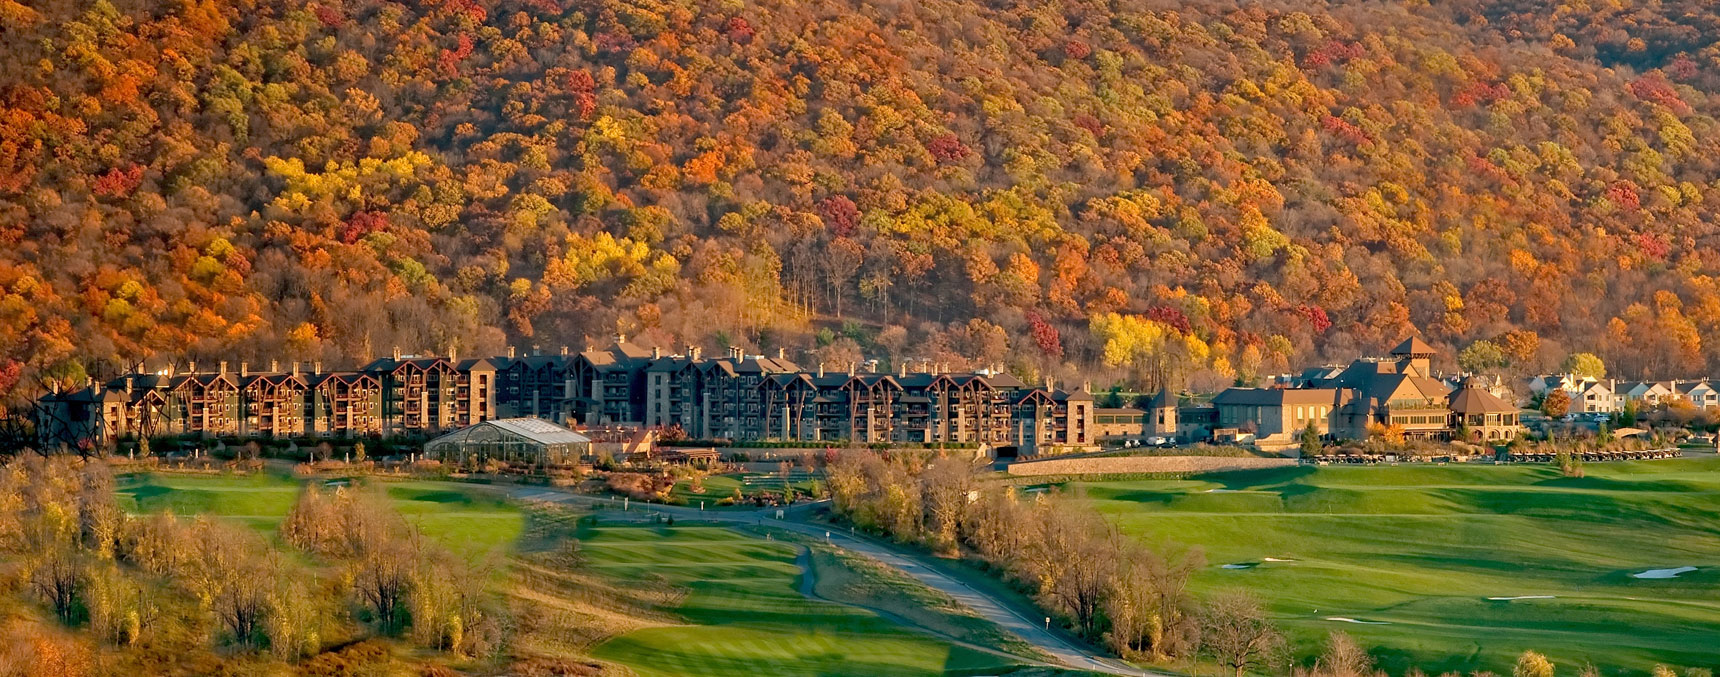 Leaf Peeping Season at Crystal Springs Resort